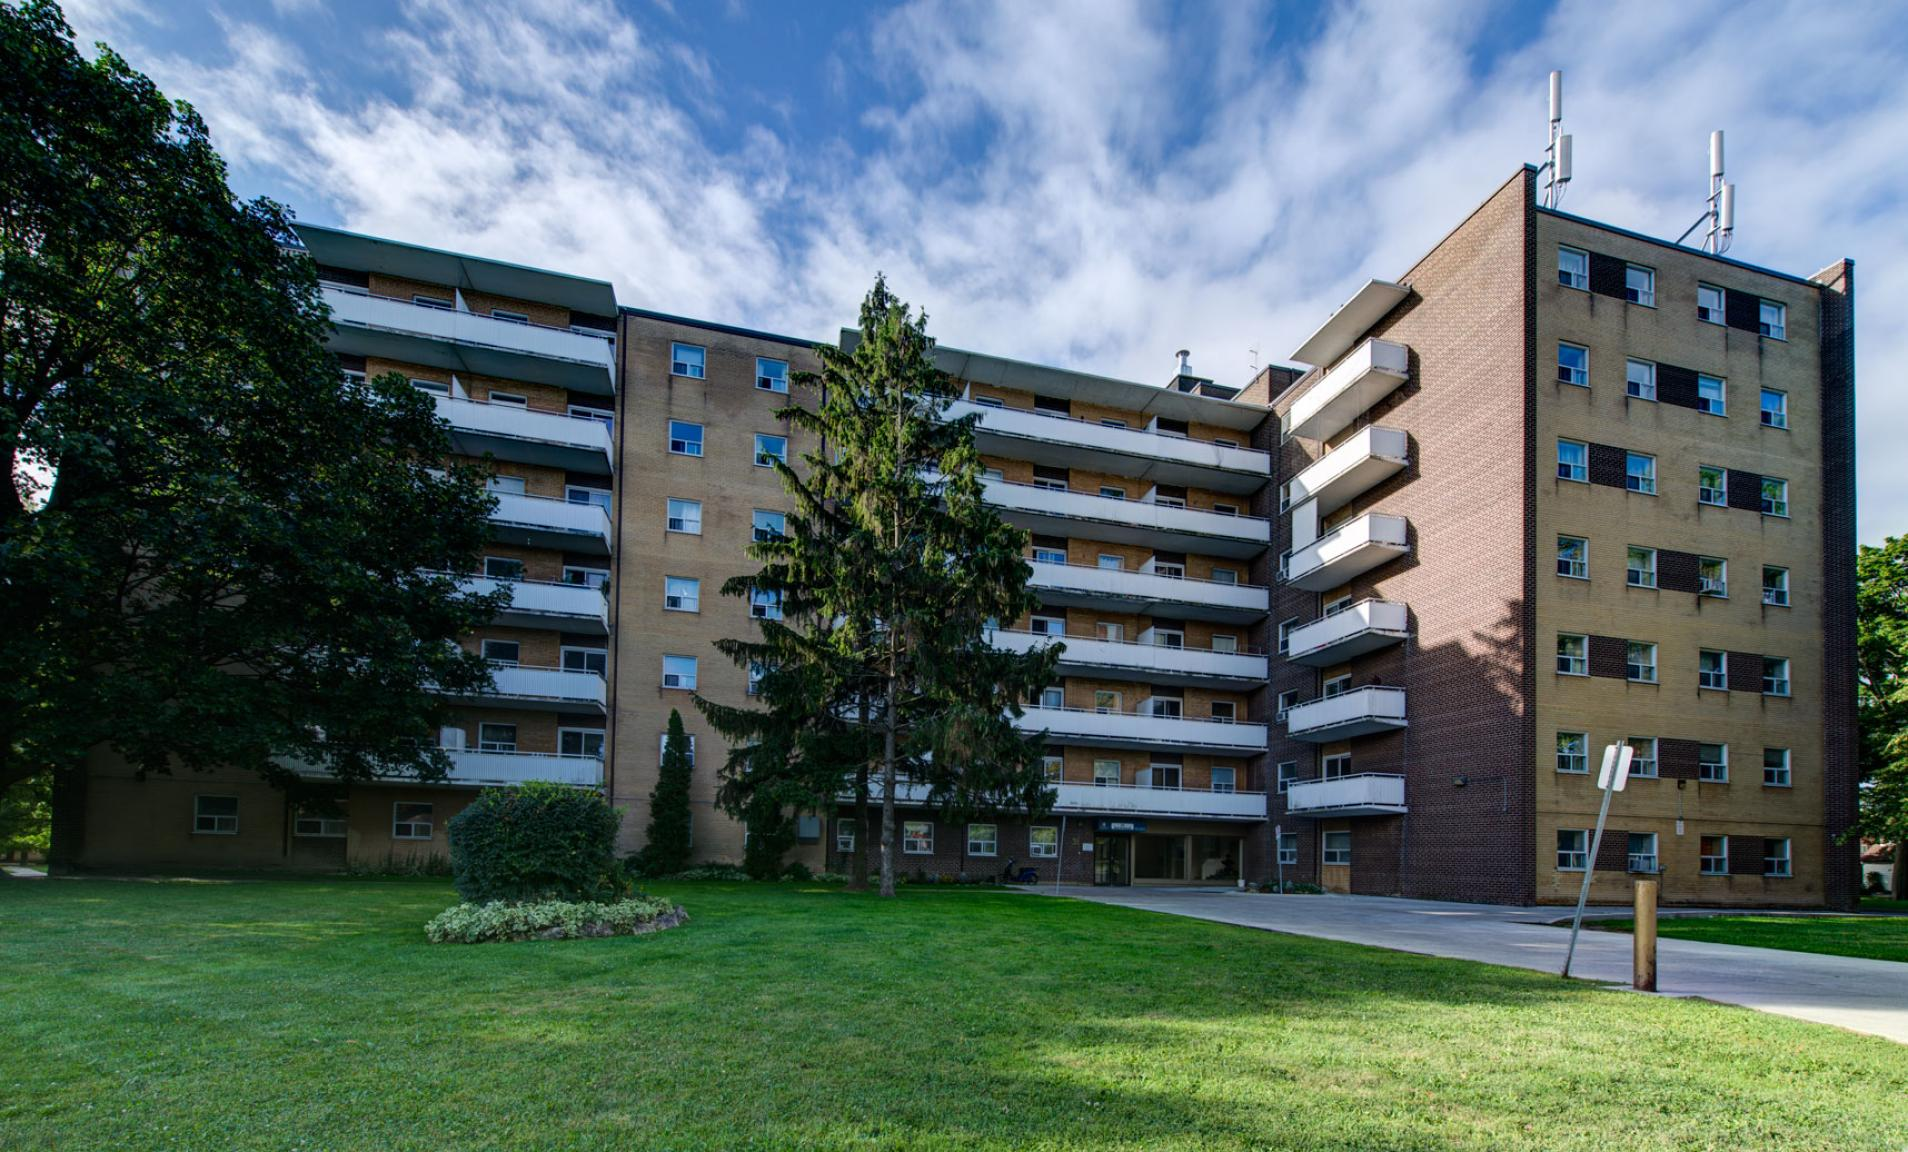 1 bedroom Apartments for rent in Toronto at Lake Promenade Community - Photo 01 - RentersPages – L157717